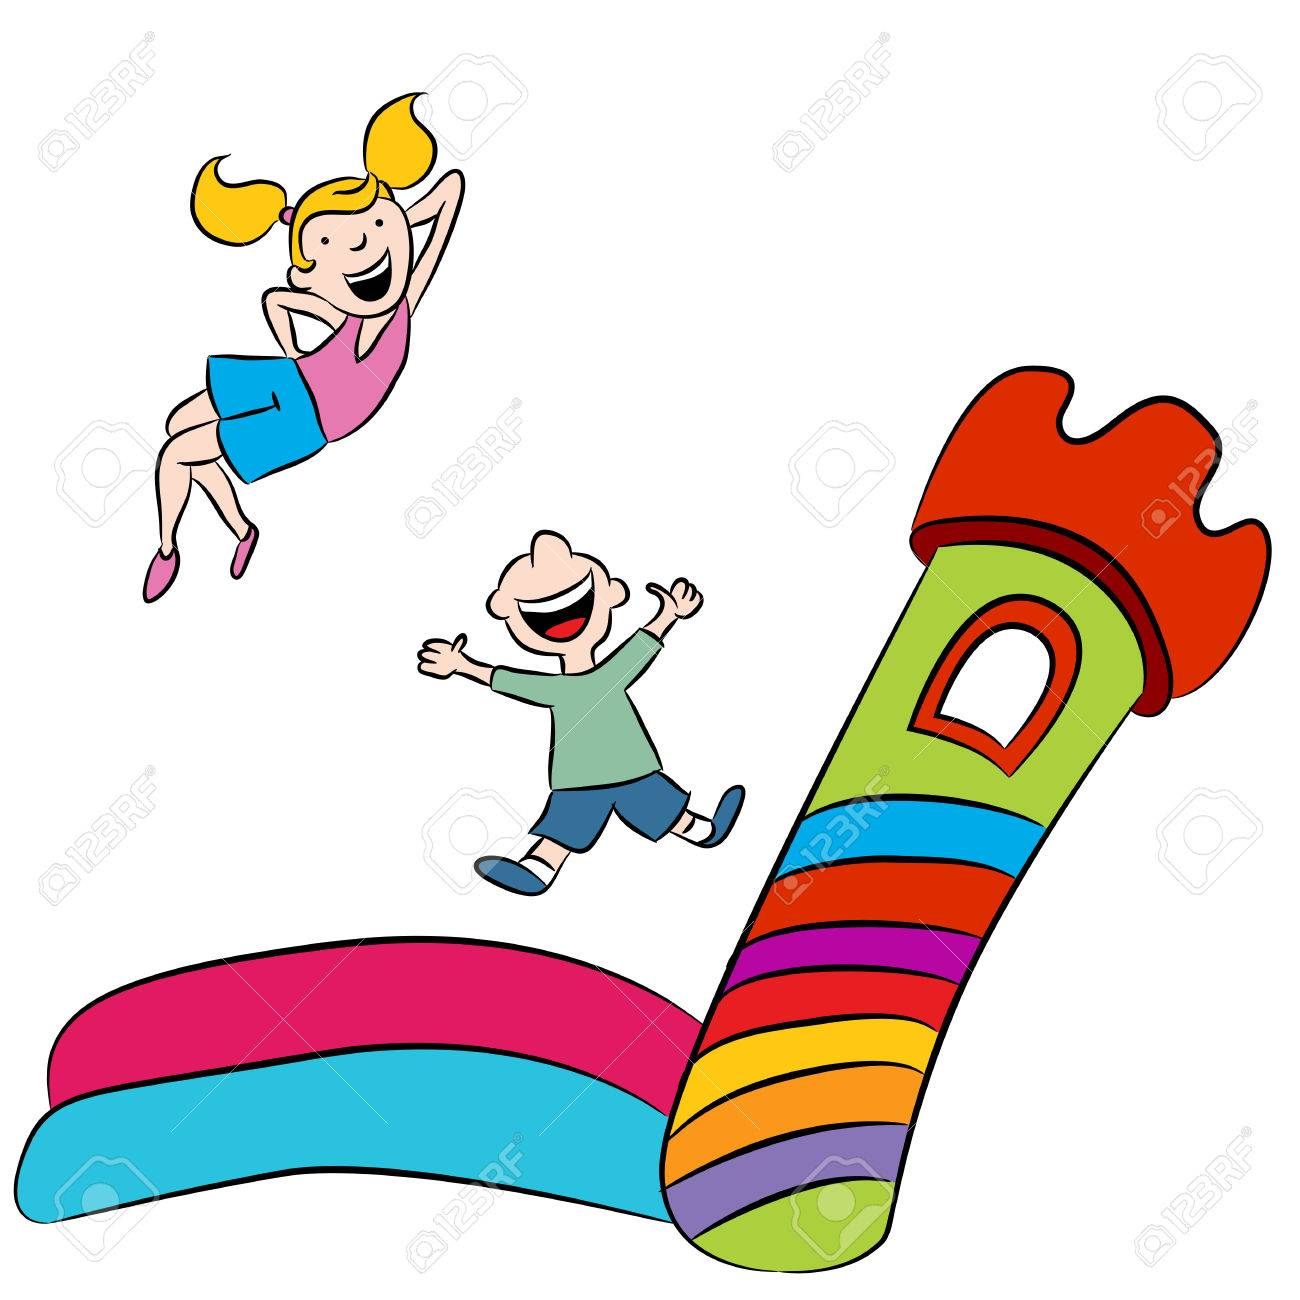 an image of children playing on a bounce house royalty free rh 123rf com bounce house clipart black and white bounce house clip art free